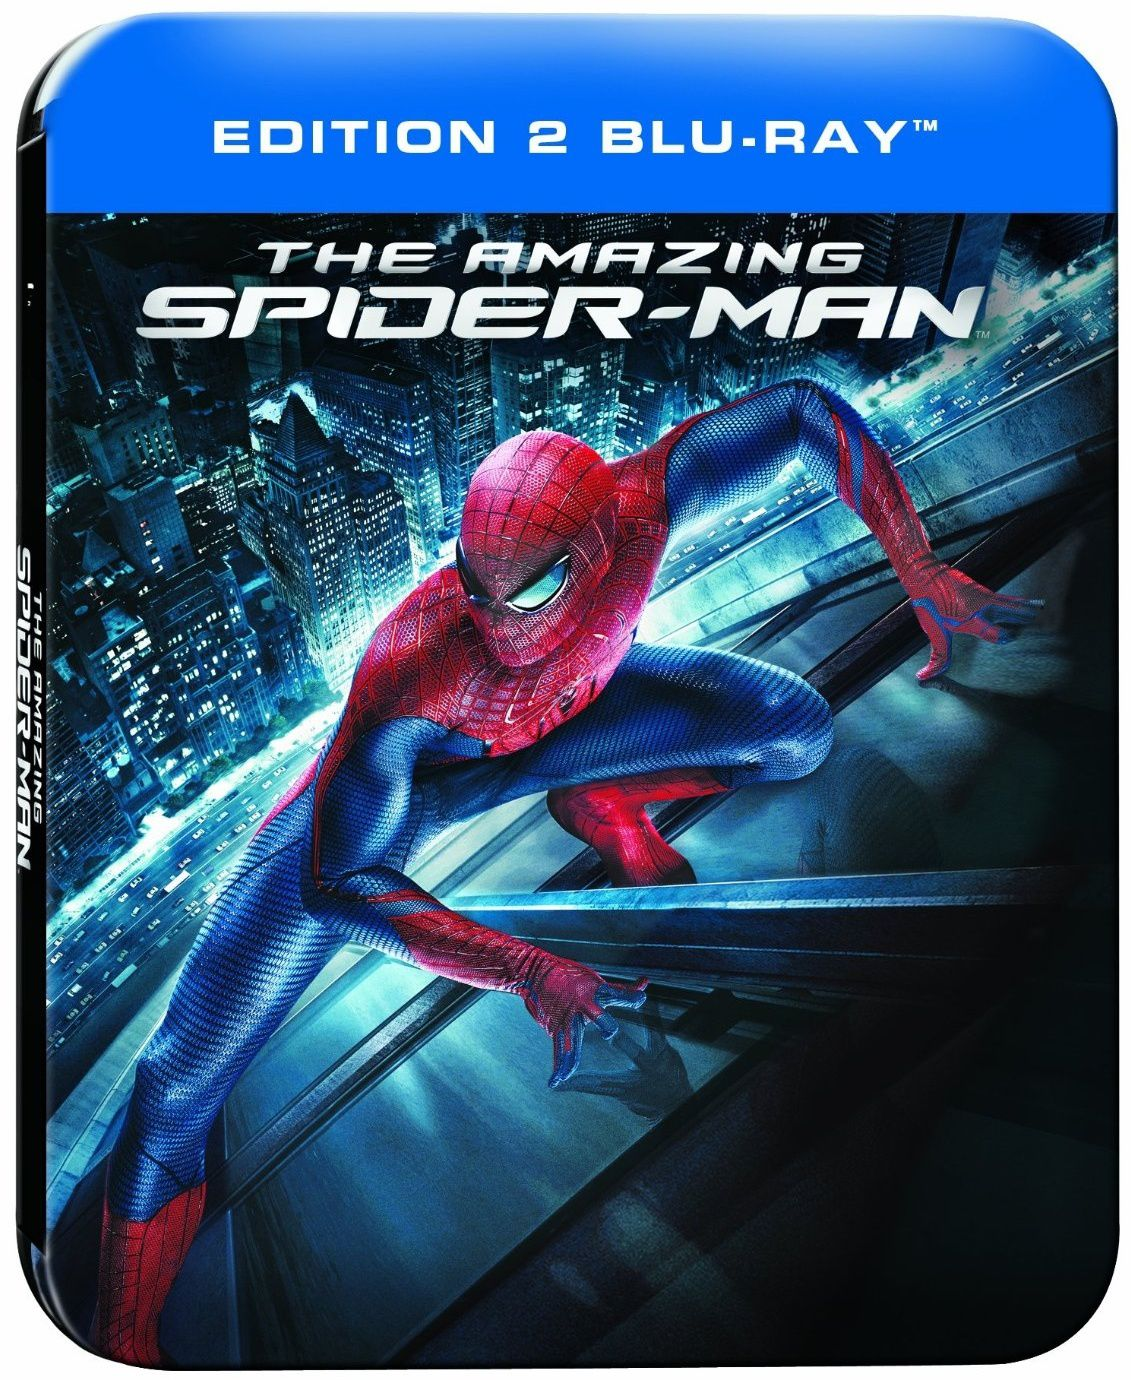 The amazing Spider-man 1 en blu-ray métal/digital ultraviolet en France à 12€ only !